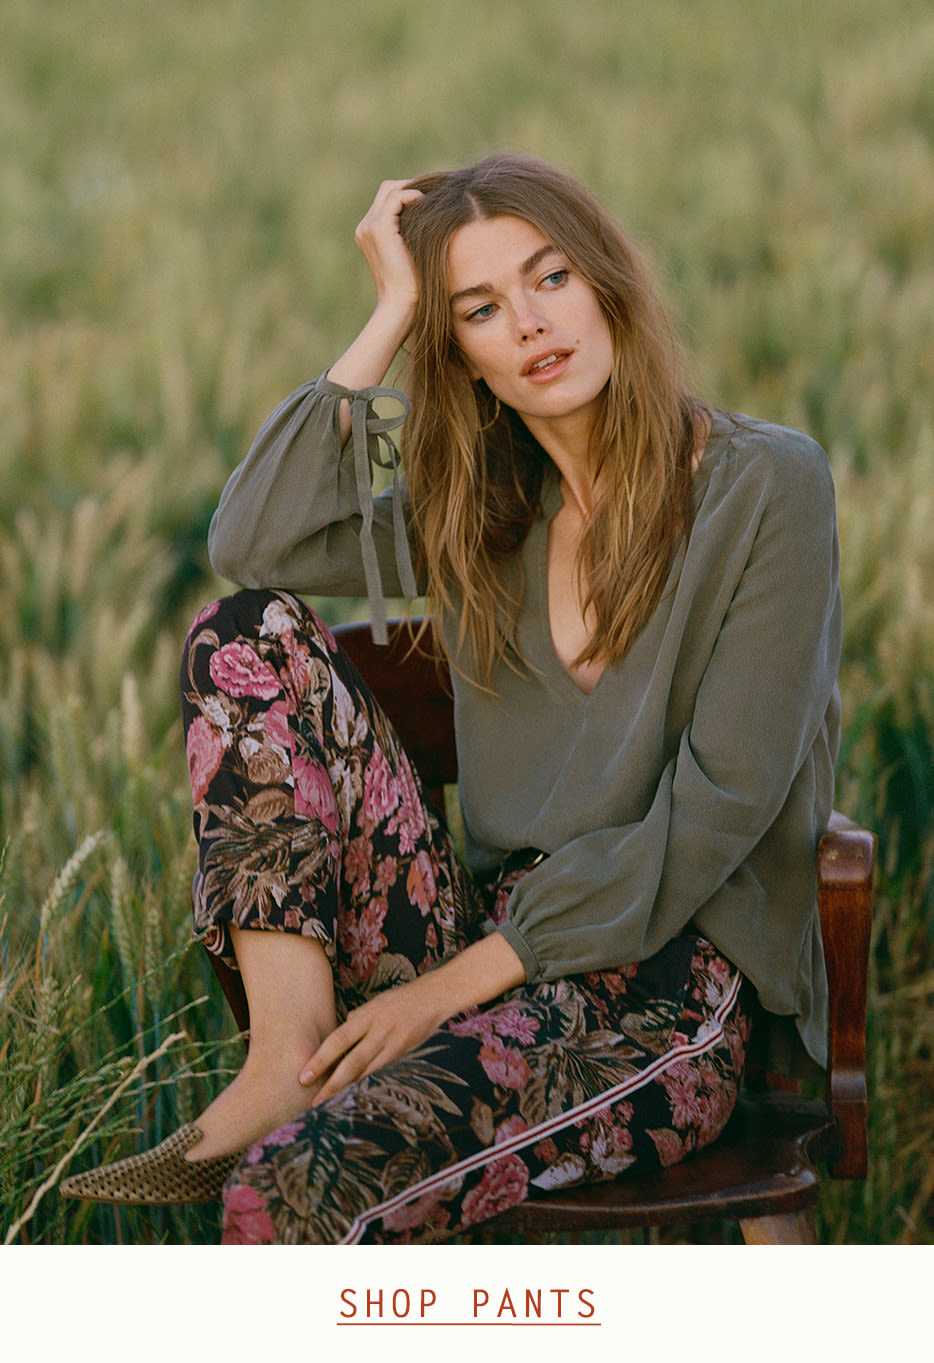 Anthropologie - Women\'s Clothing, Accessories & Home